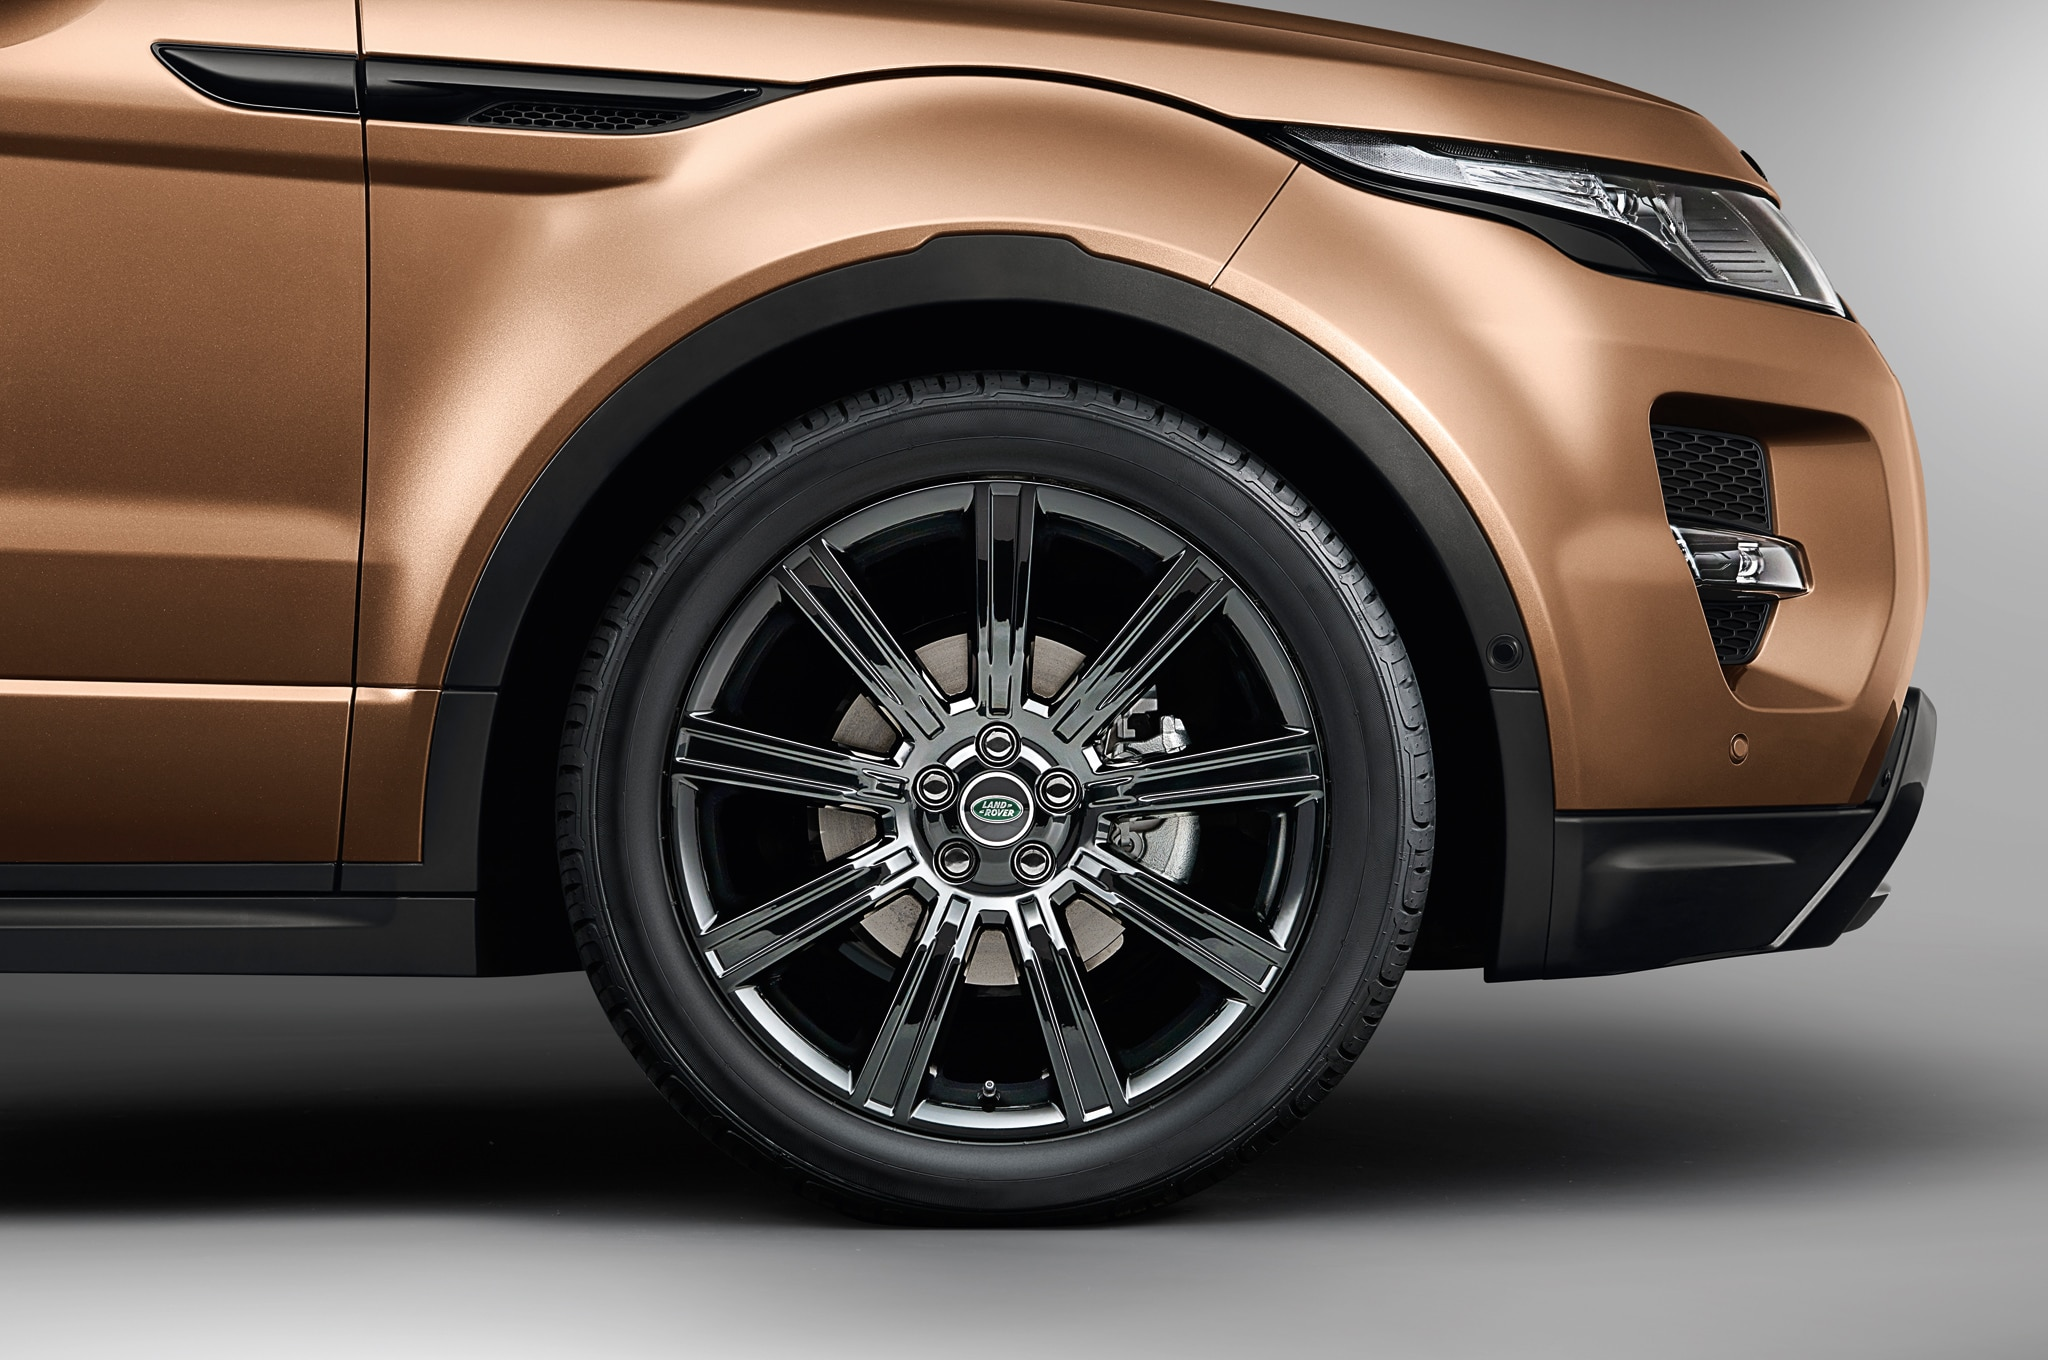 2014 land rover range rover evoque fuel economy rises to. Black Bedroom Furniture Sets. Home Design Ideas